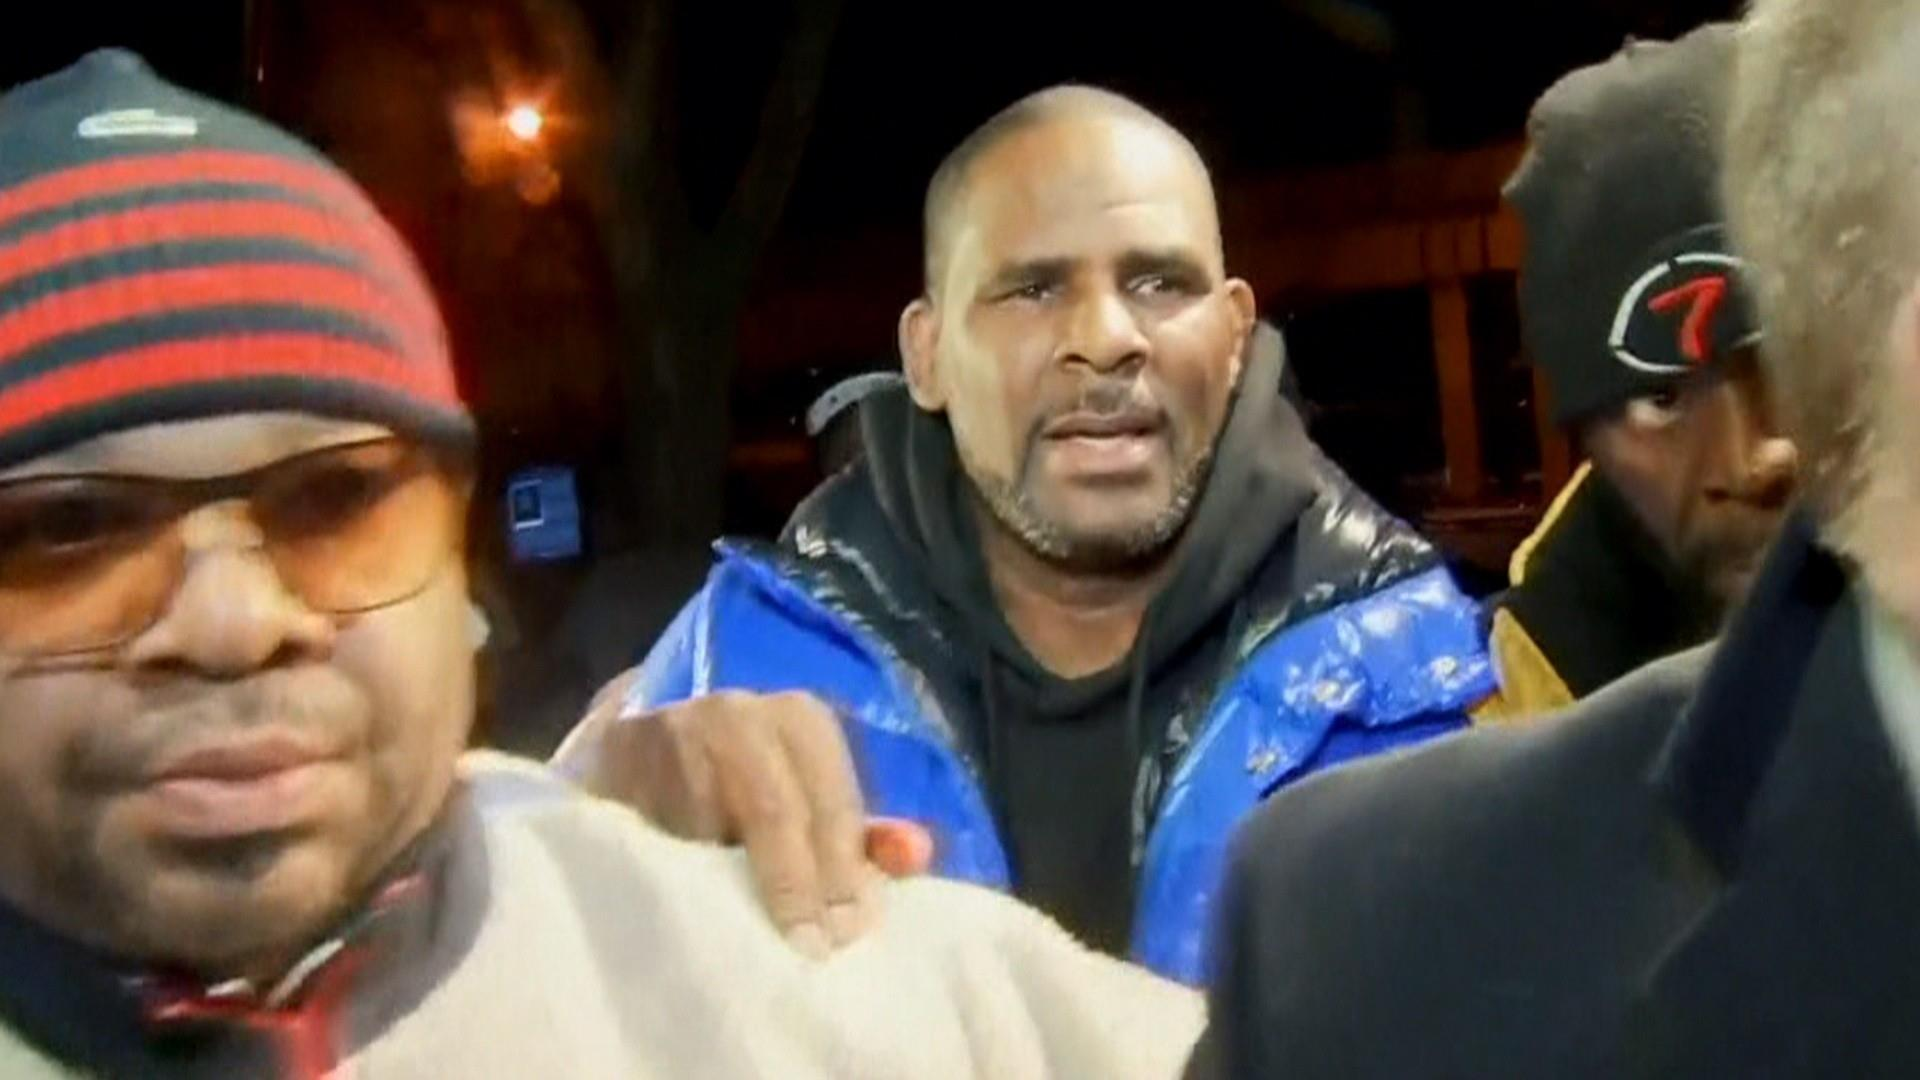 R. Kelly case: How challenging will the case be for prosecutors?